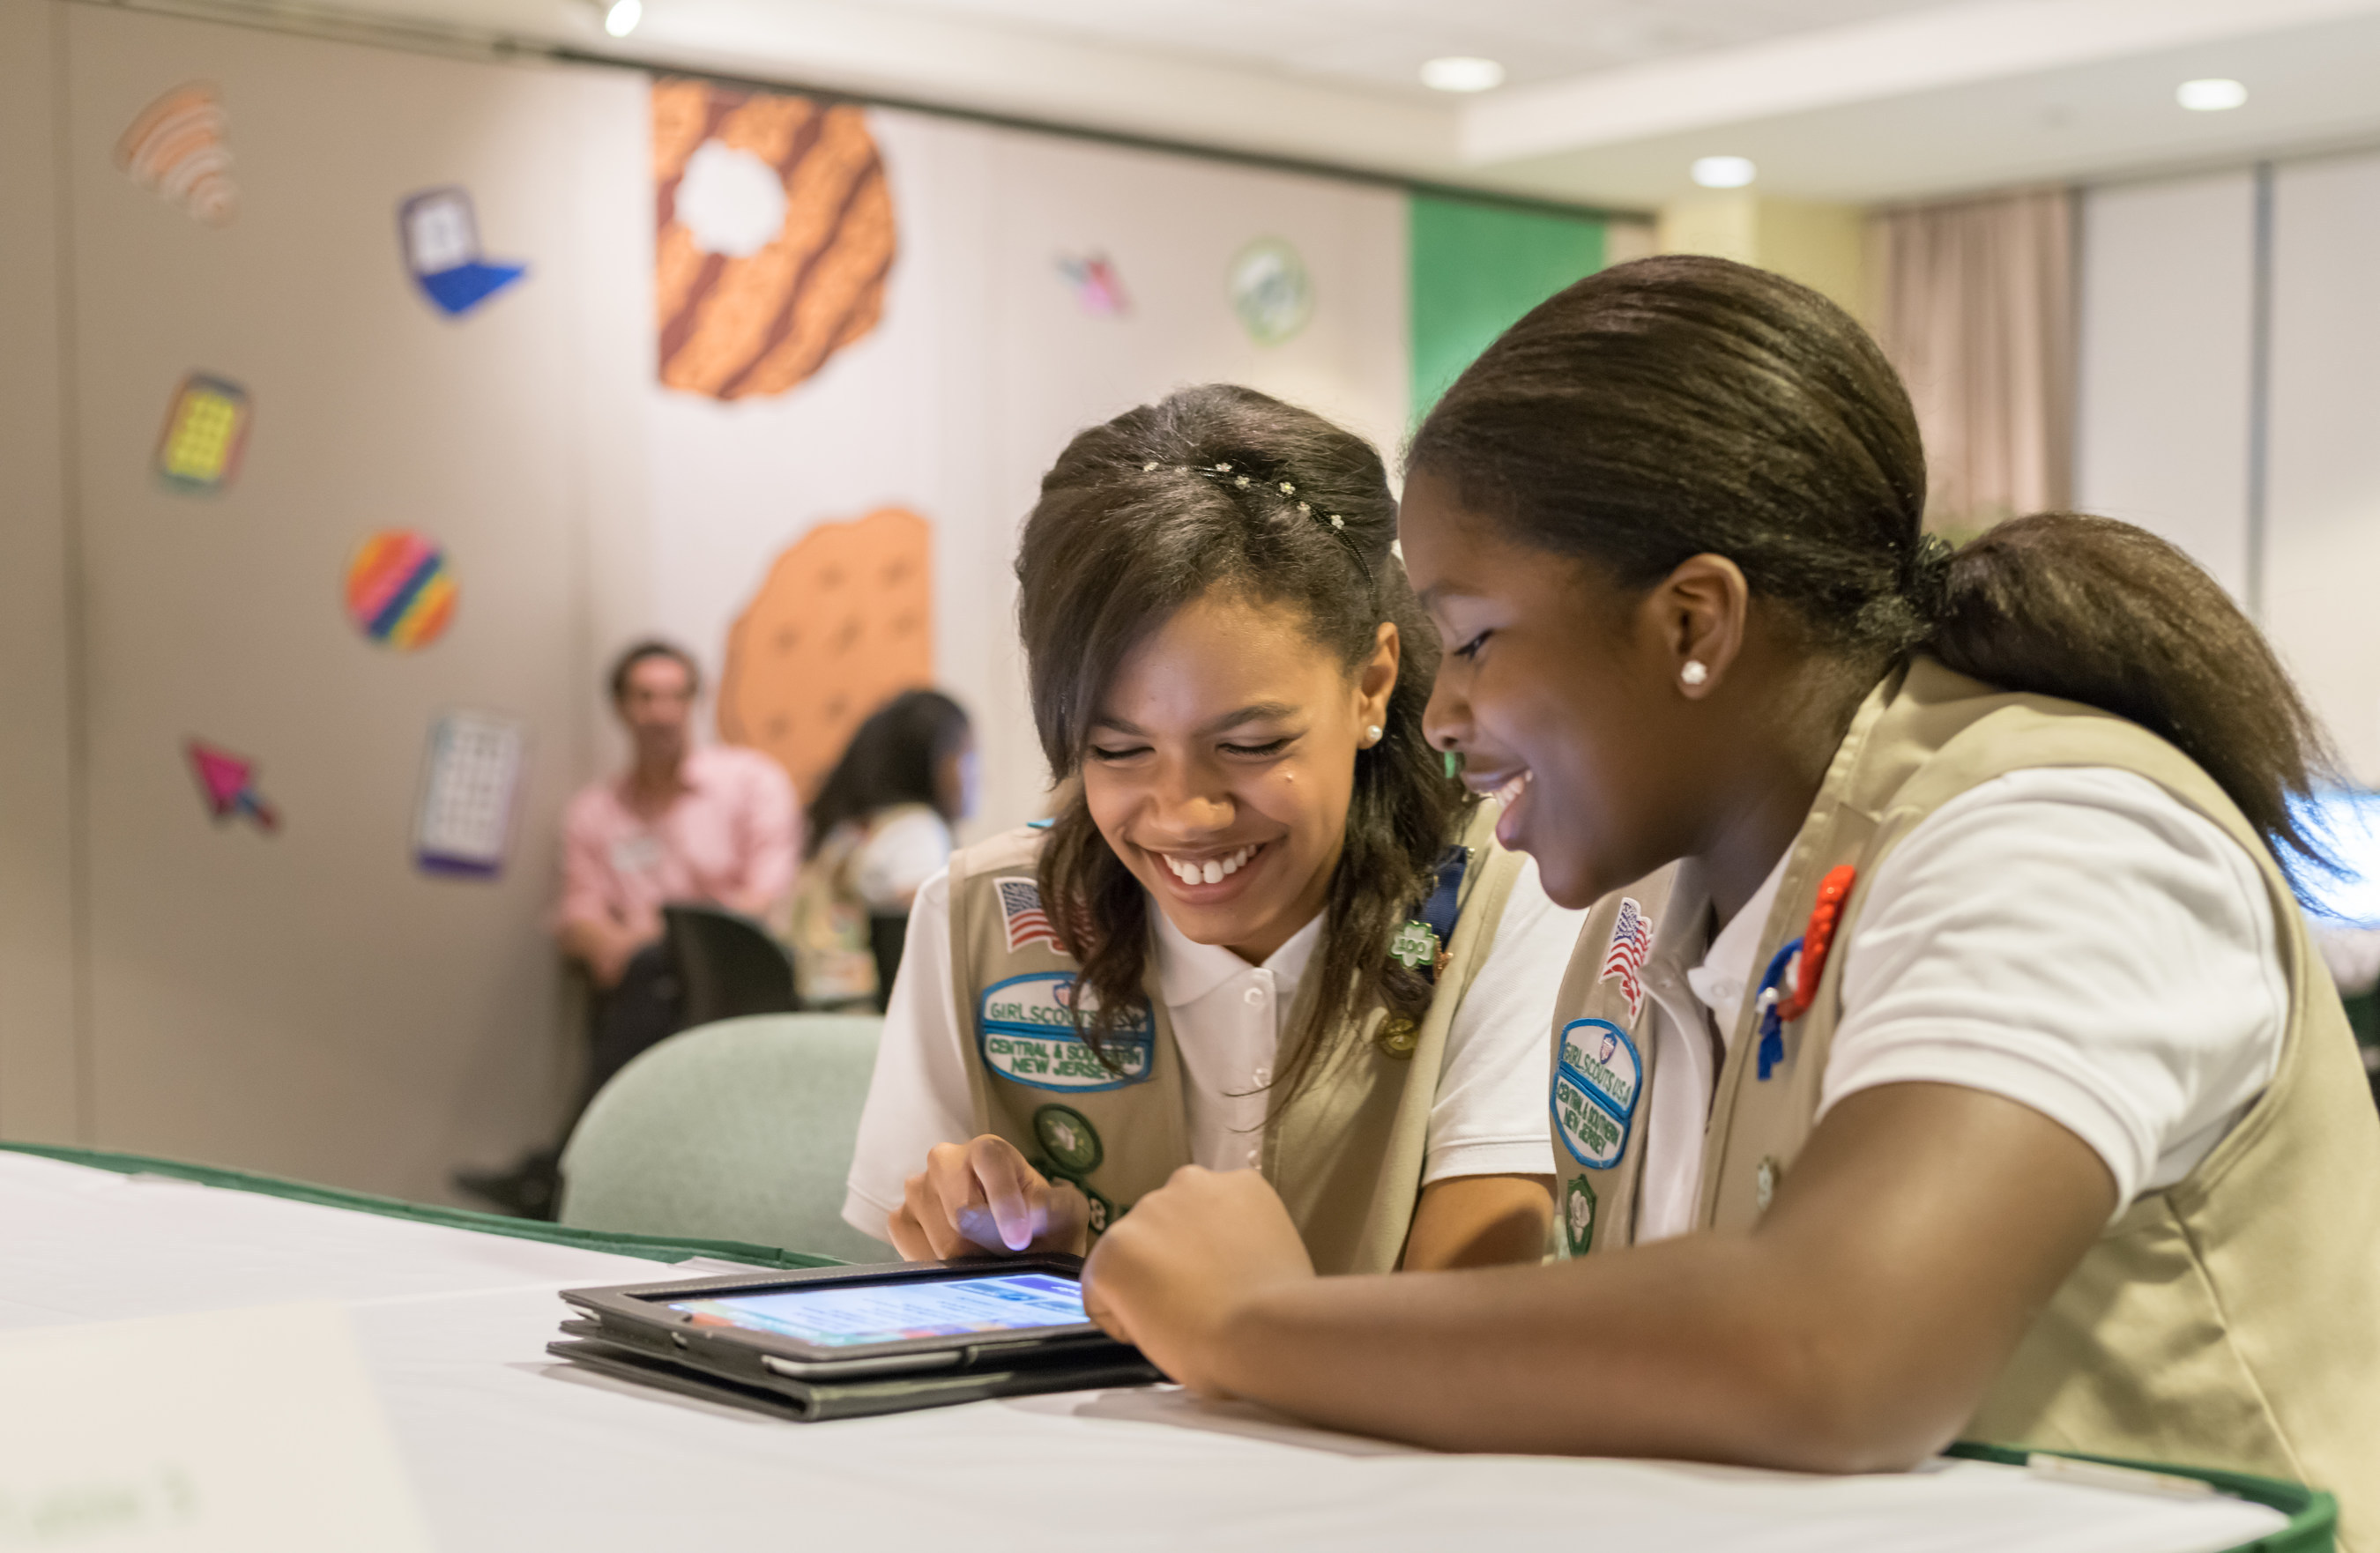 Bria and Shirell practice placing orders with Digital Cookie, a new addition to the Girl Scout Cookie Program.